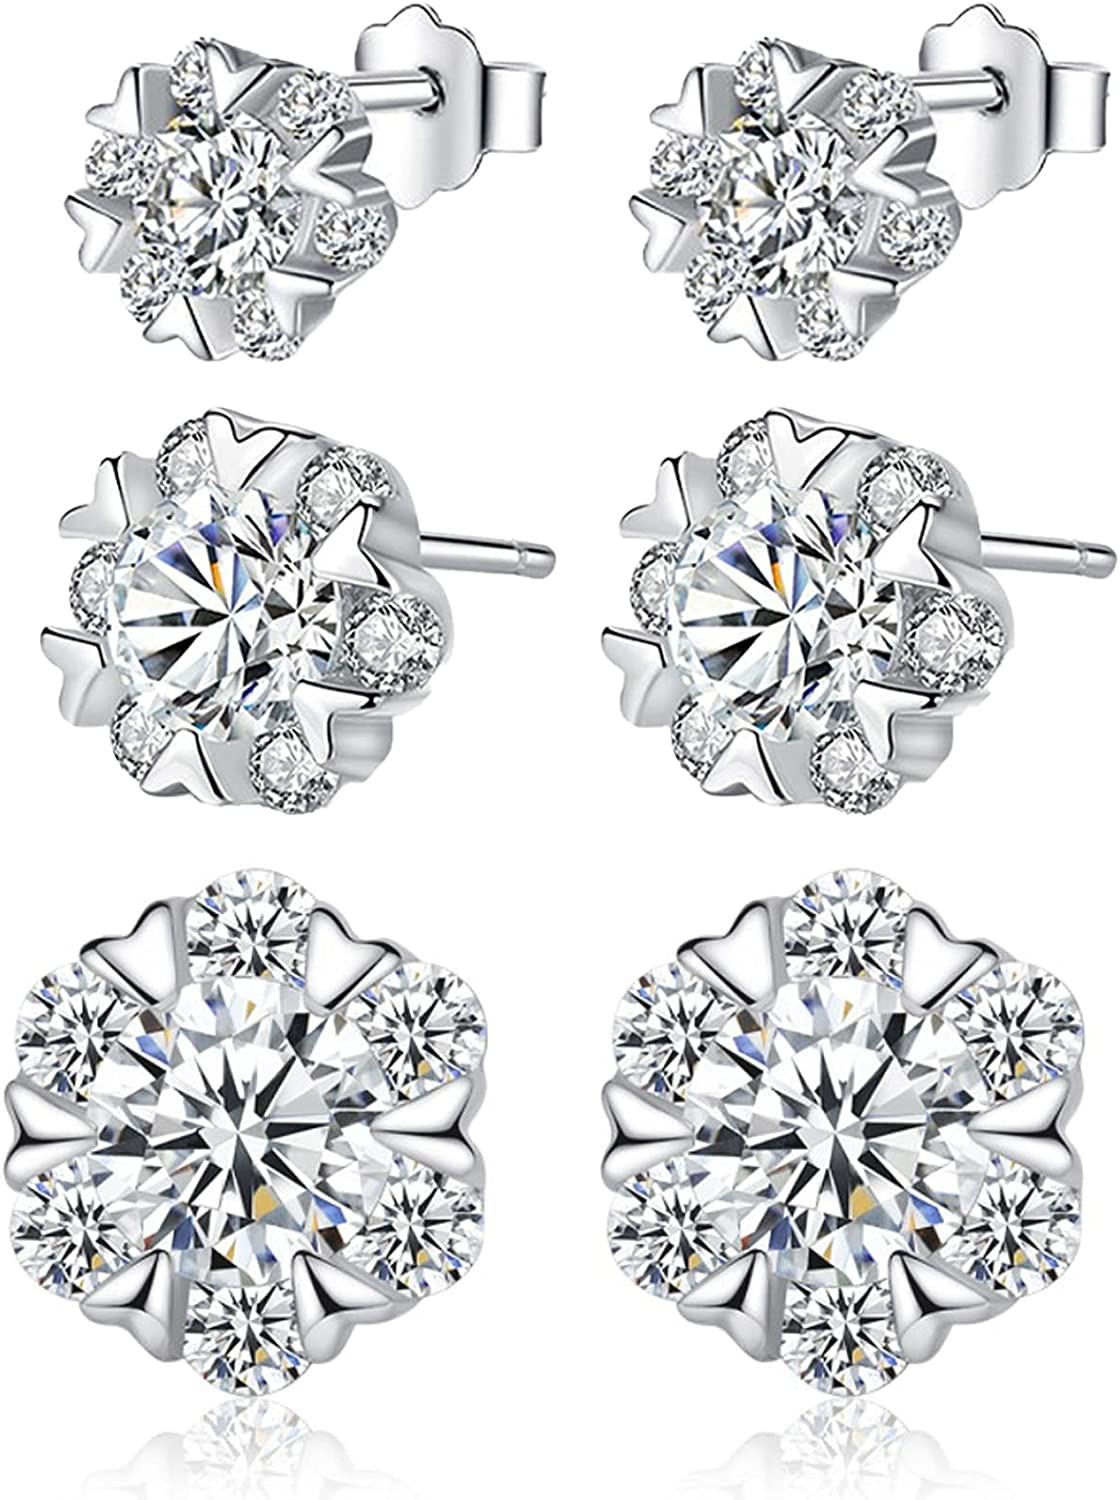 Harberd Snowflake Pendant Necklace Sterling Cubic Silver Zirconi Dealing full price Max 87% OFF reduction